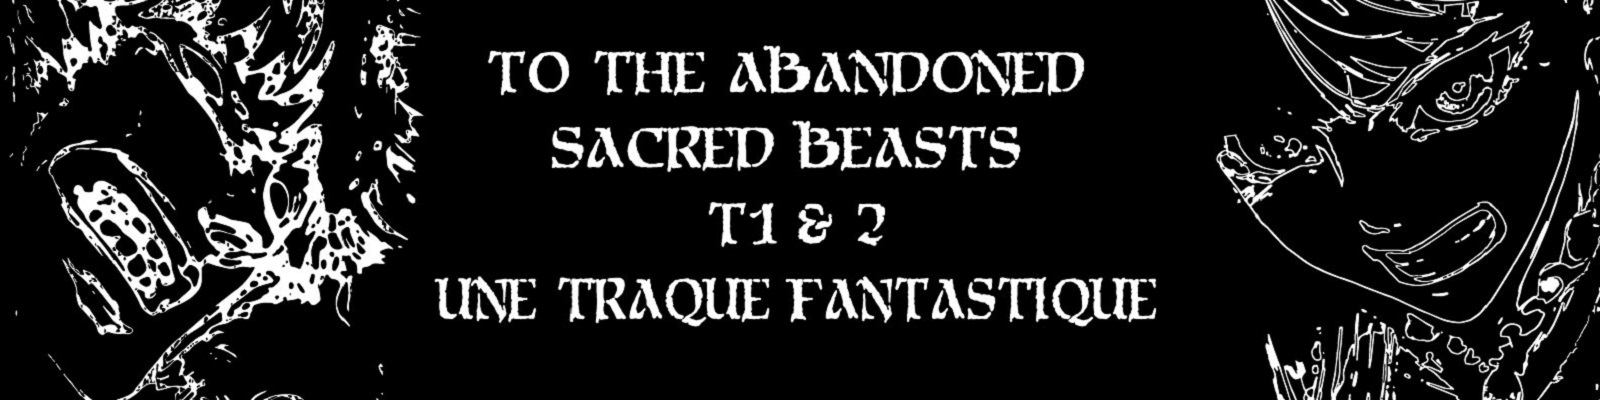 To The Abandoned Sacred Beasts-2